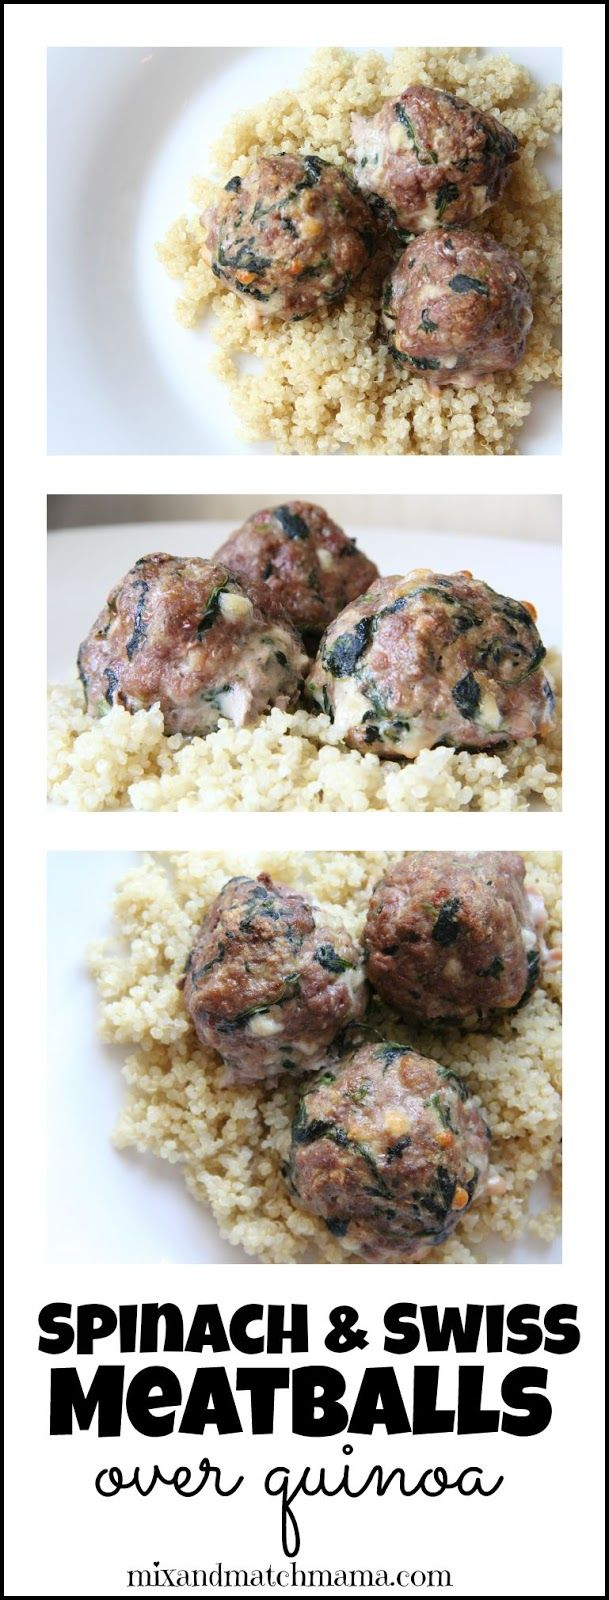 Spinach & Swiss Meatballs over Quinoa for dinner tonight! Your kids will love it and it's so simple to make!: